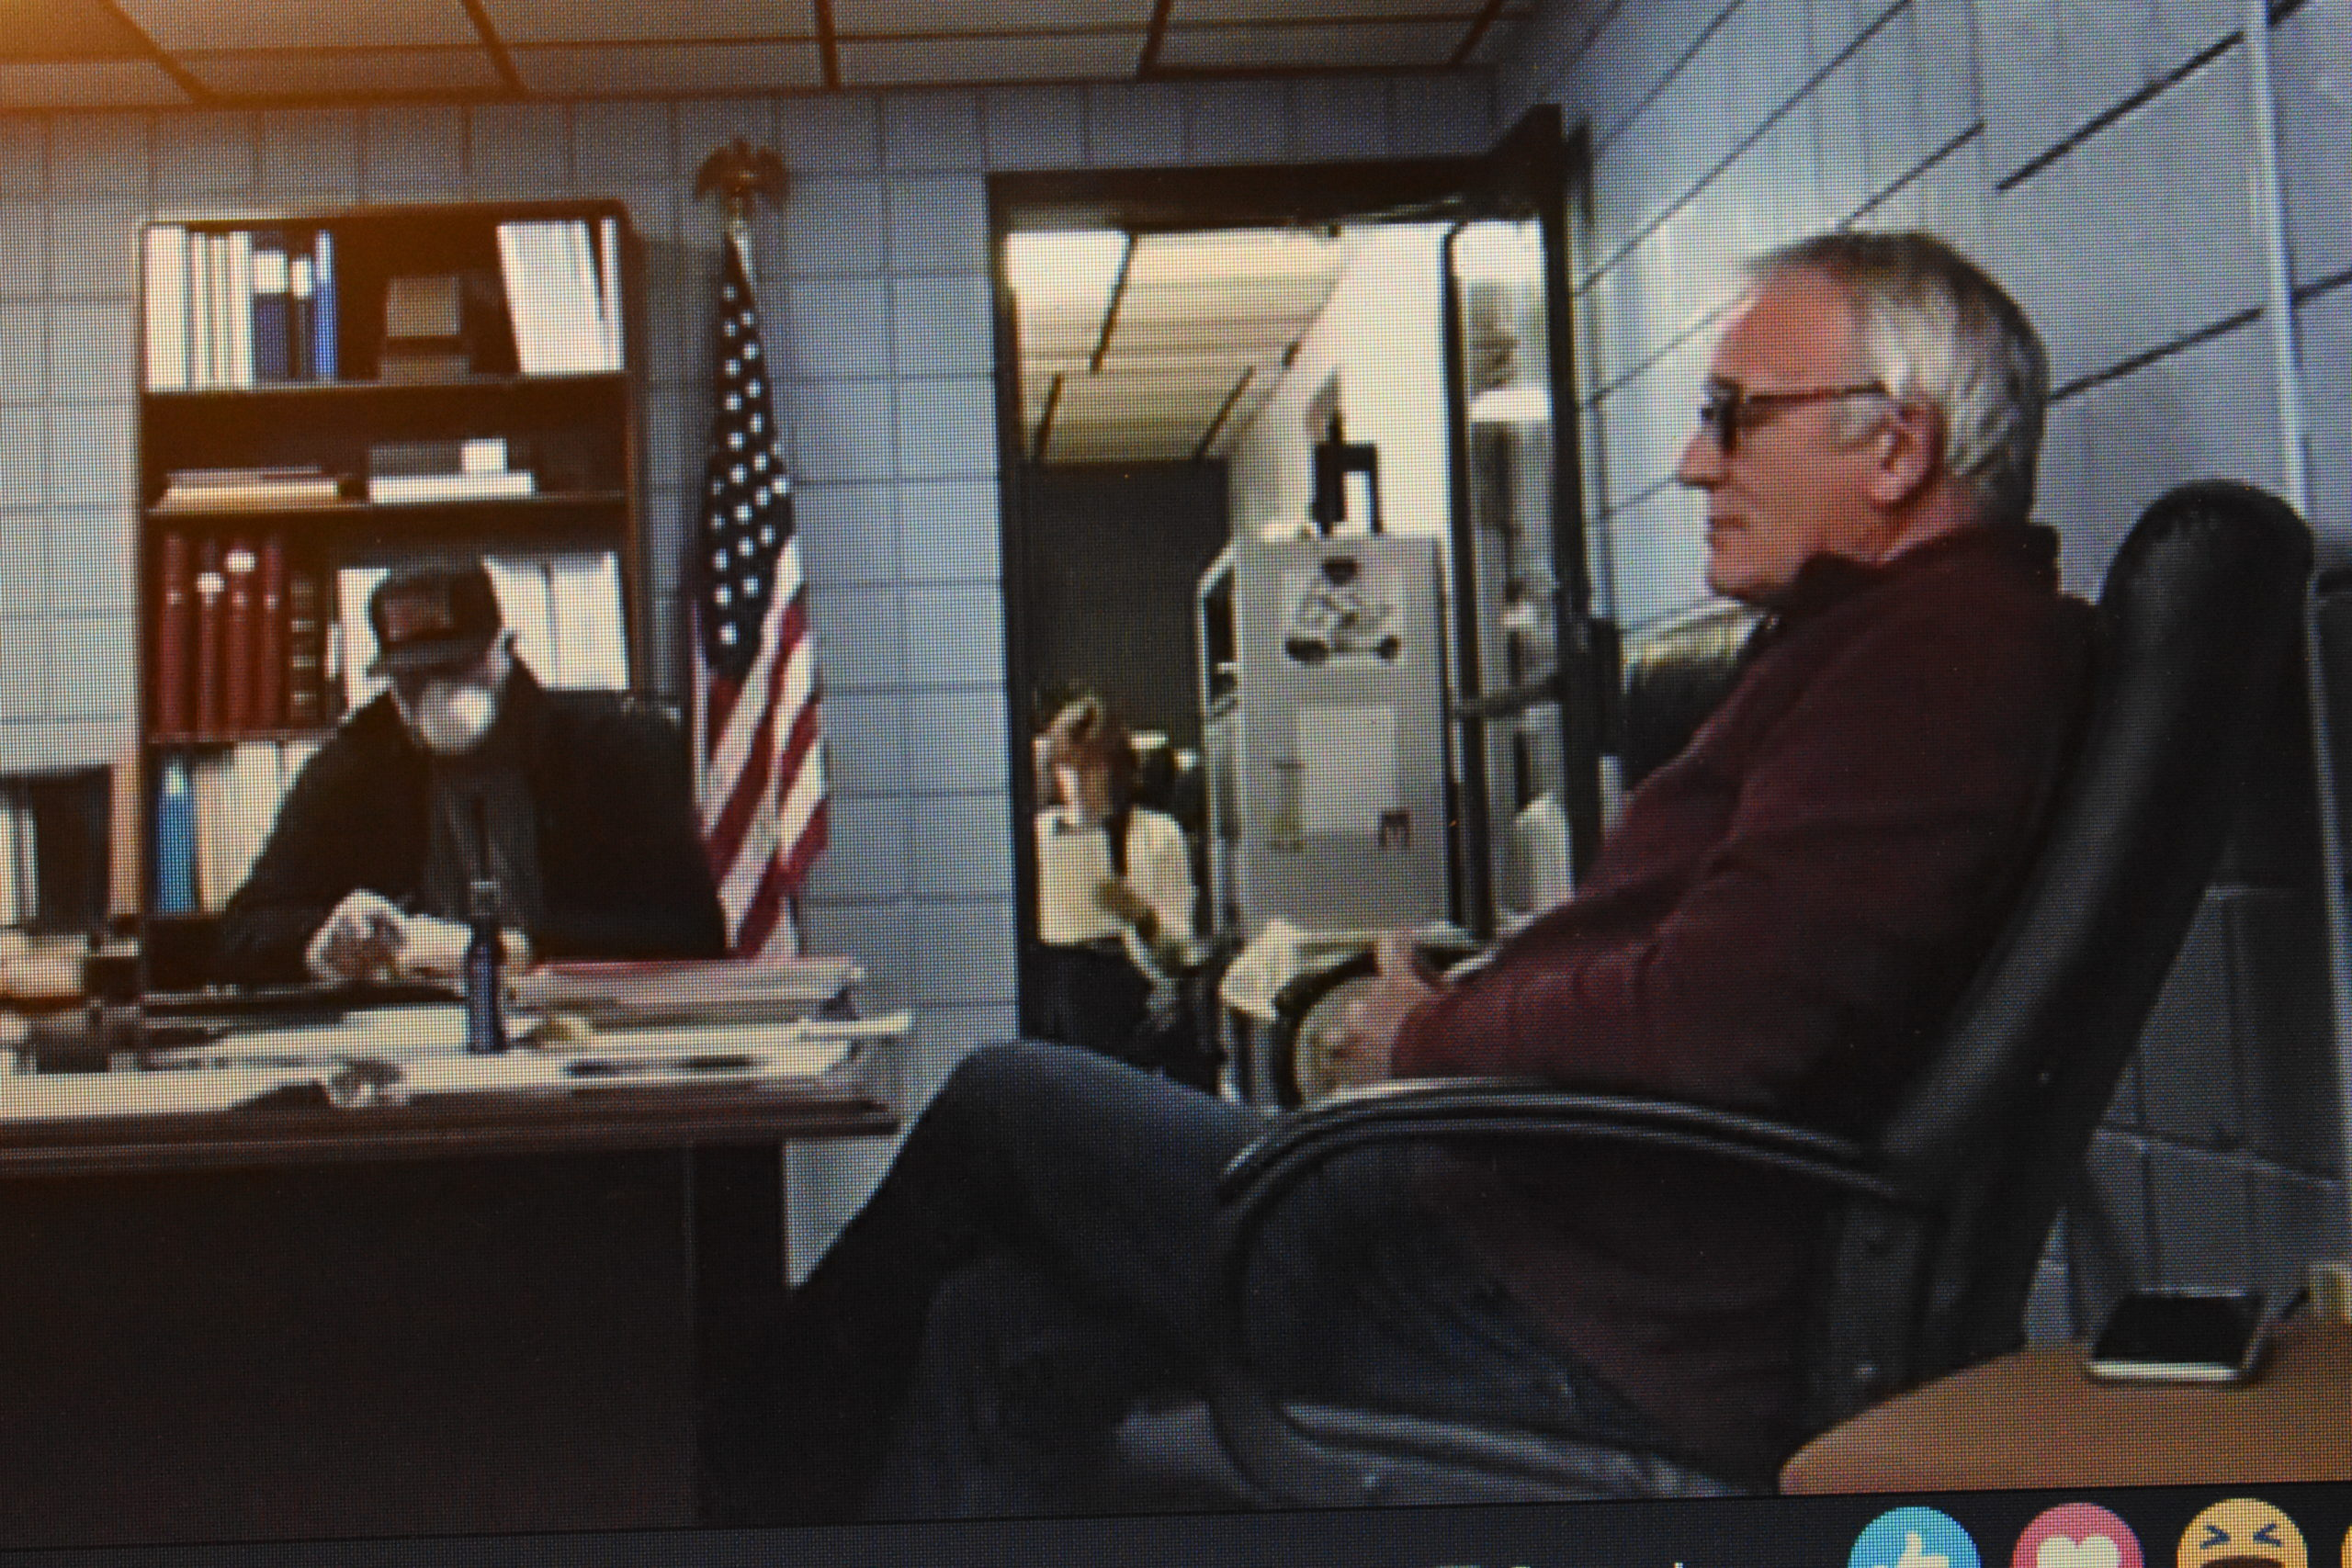 In a photo taken from an April 24 meeting broadcast on Facebook Live, township officials are, from left, Trustee Ron Haun, Fiscal Officer Dena McMullin and Trustee Dan Suttles.